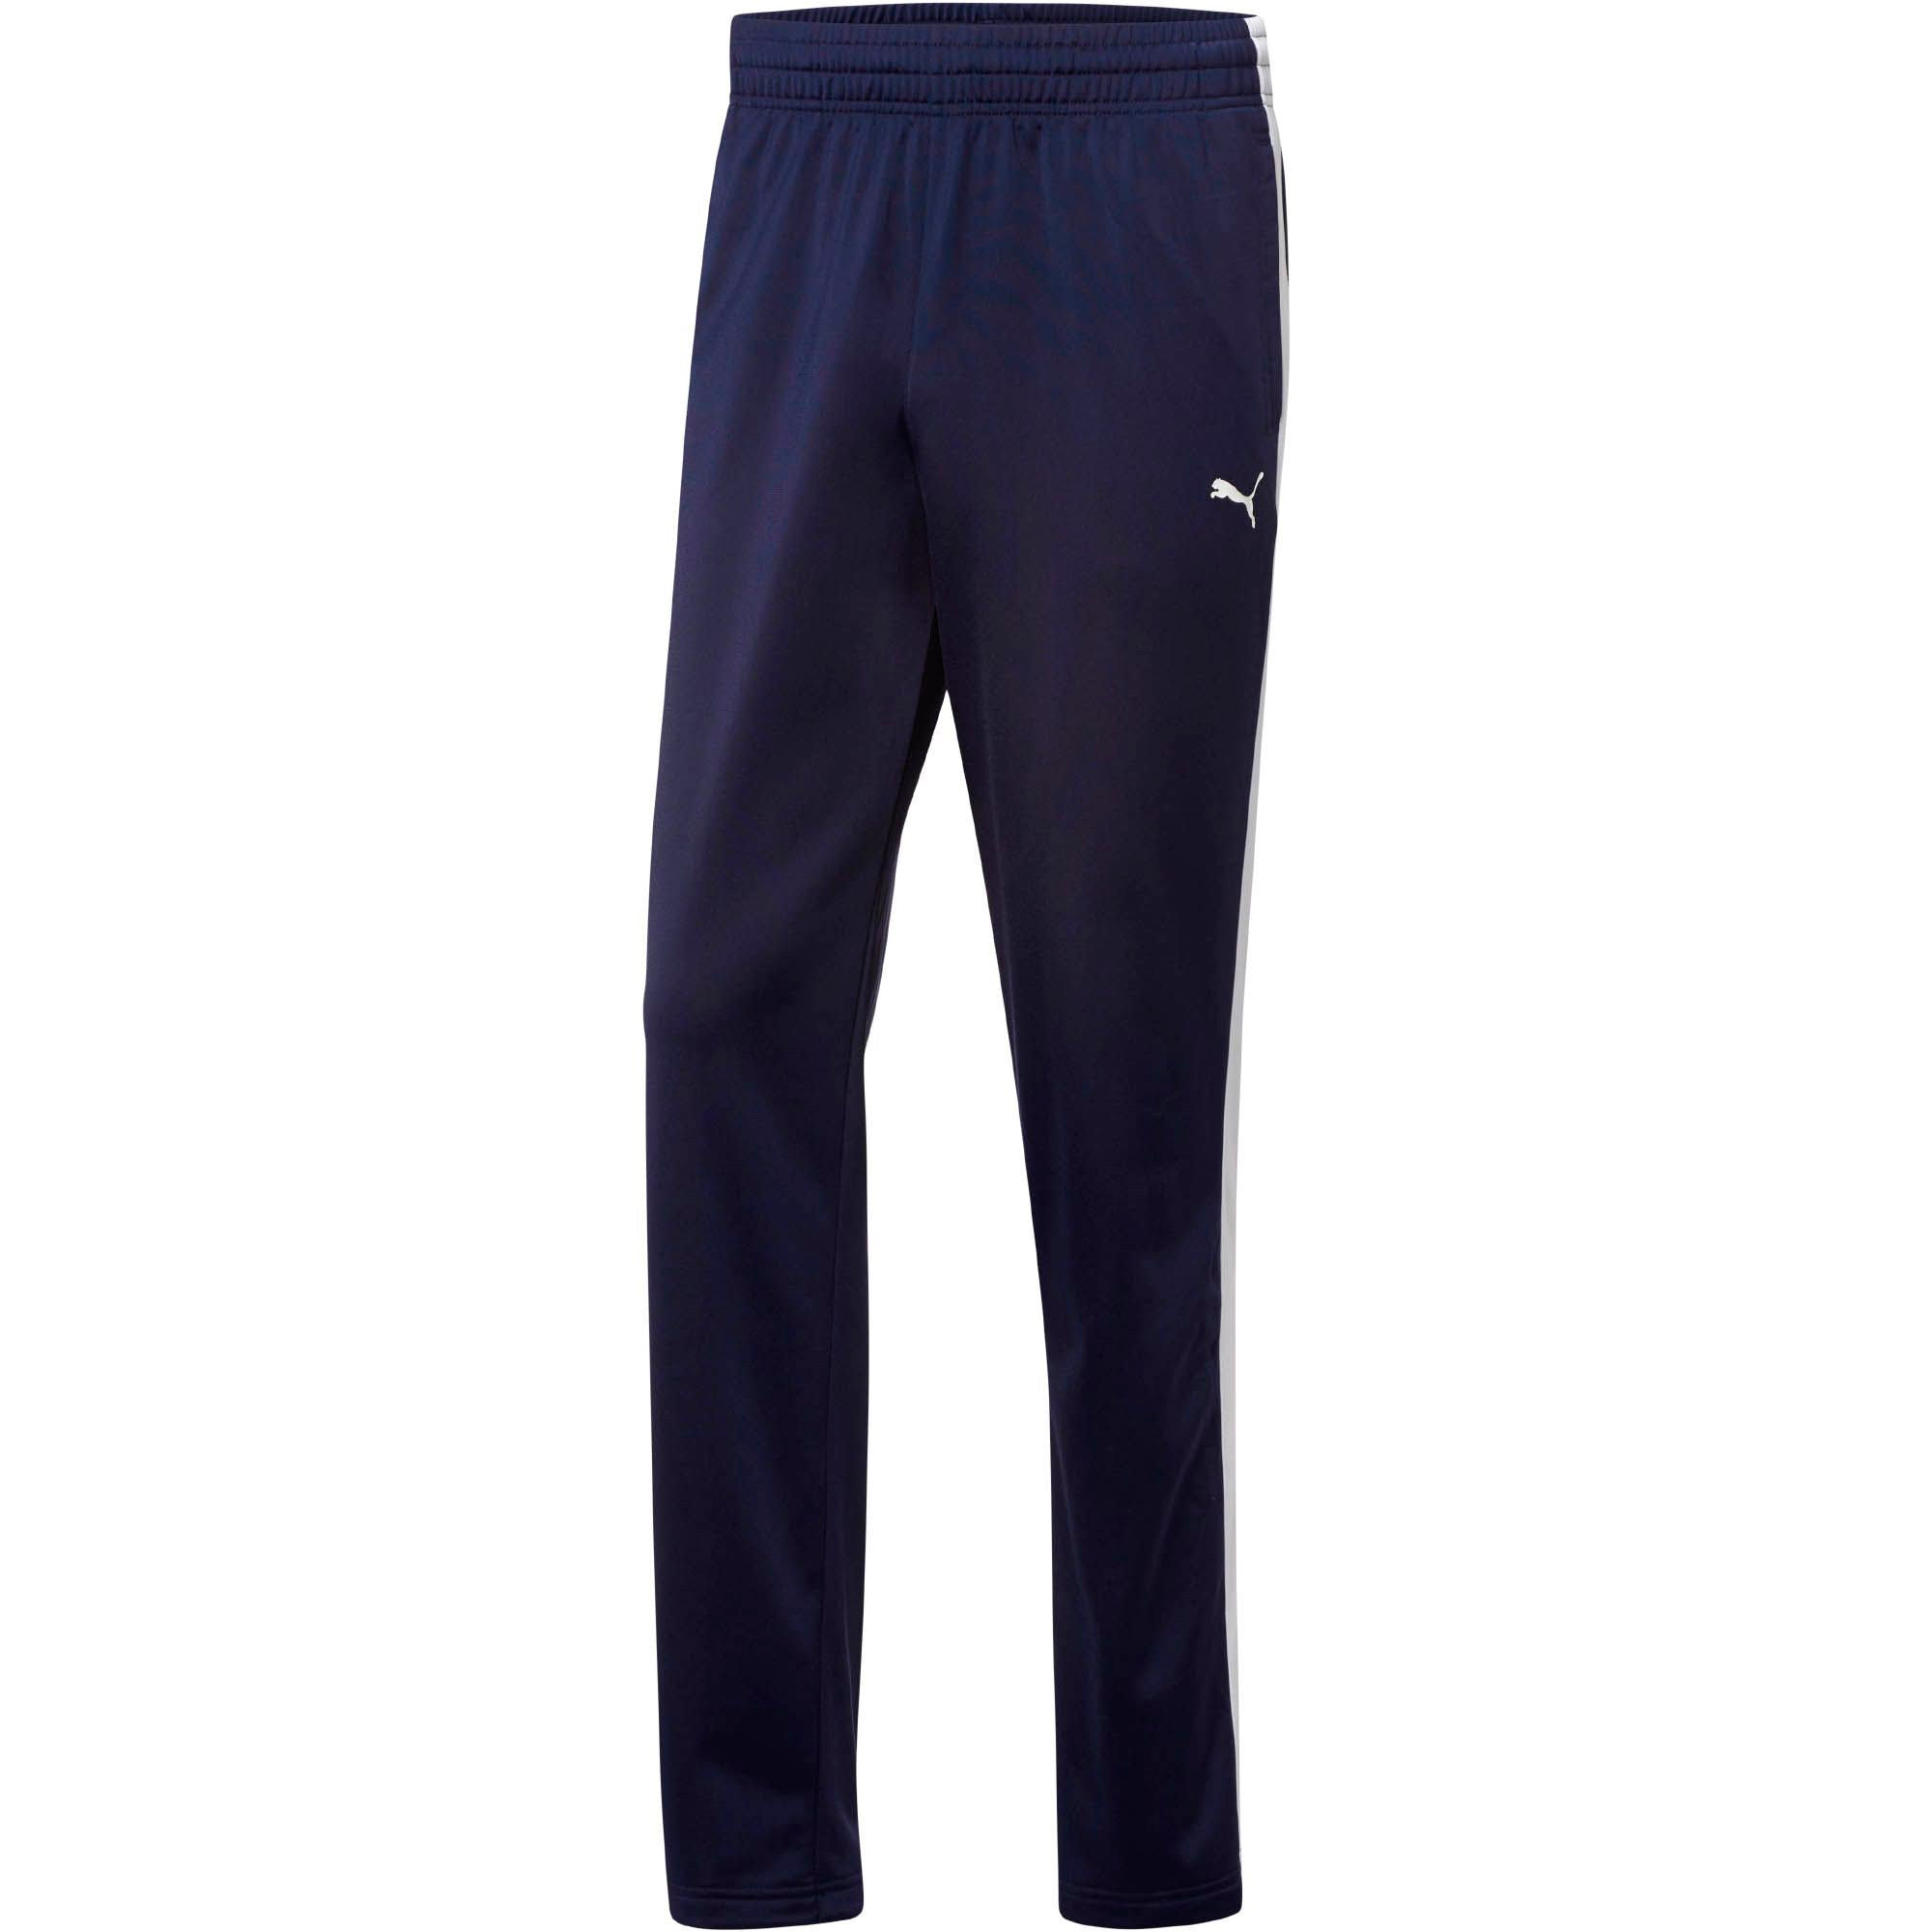 PUMA CONTRAST OPEN PANTS (MEN'S)